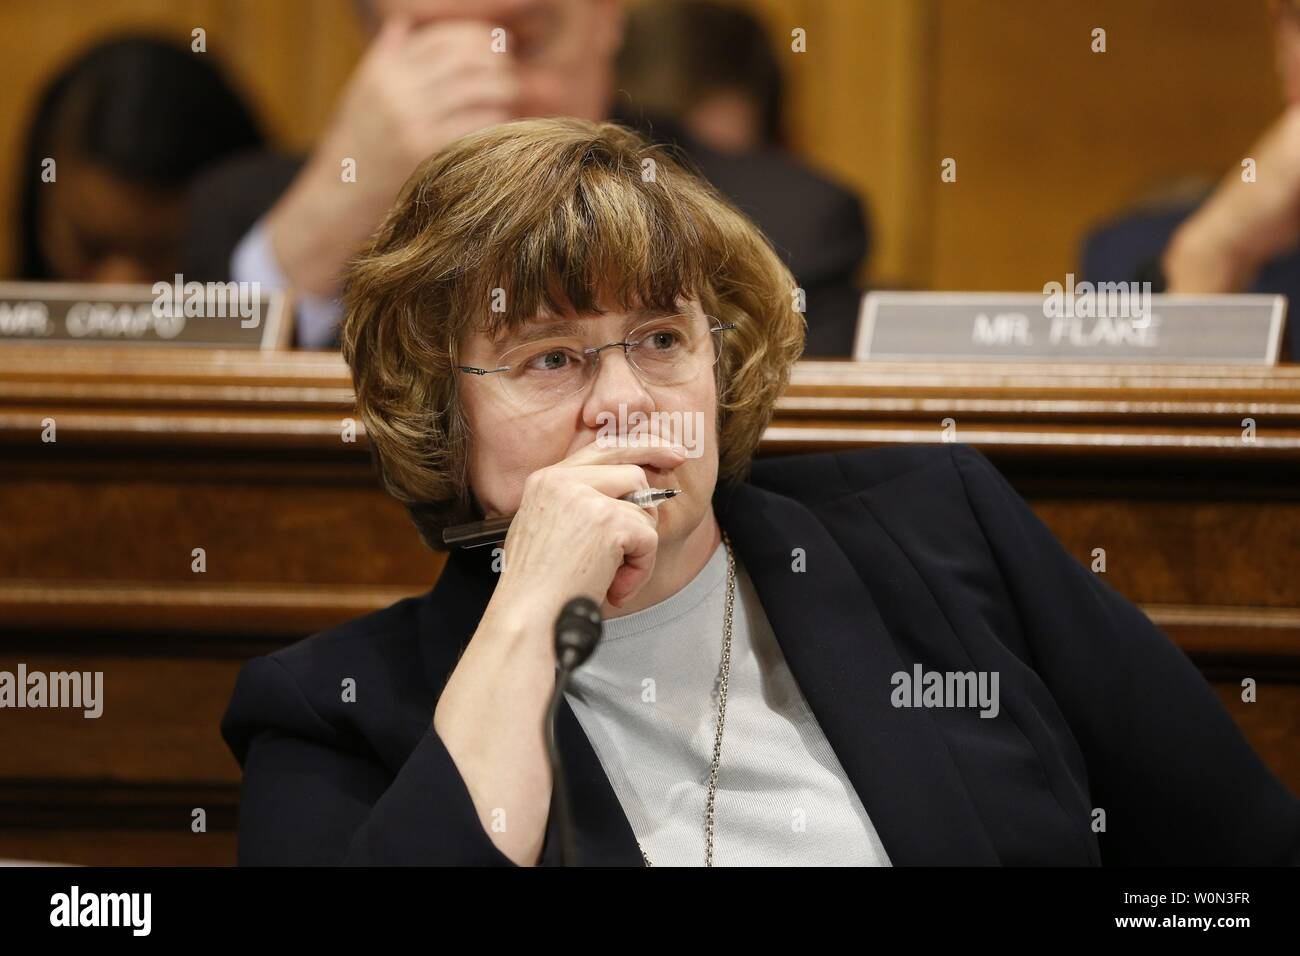 Christine Blasey Ford, the woman accusing Supreme Court nominee Brett Kavanaugh of sexually assaulting her at a party 36 years ago, testifies before the US Senate Judiciary Committee on Capitol Hill in Washington, DC, September 27, 2018.   Photo by Michael Reynolds/UPI Stock Photo